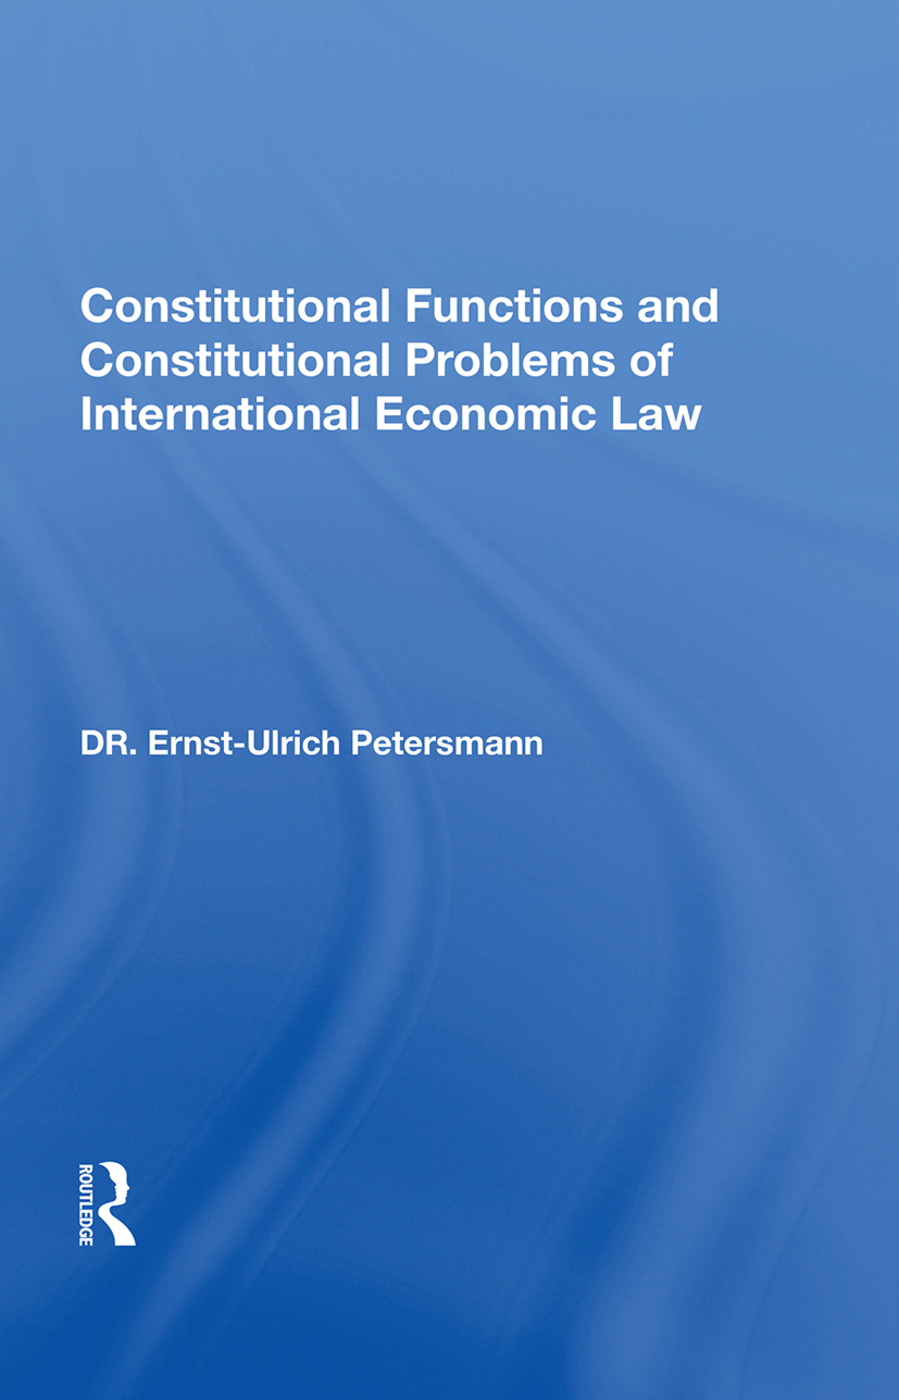 Constitutional Functions of Liberal International Trade and Monetary Rules